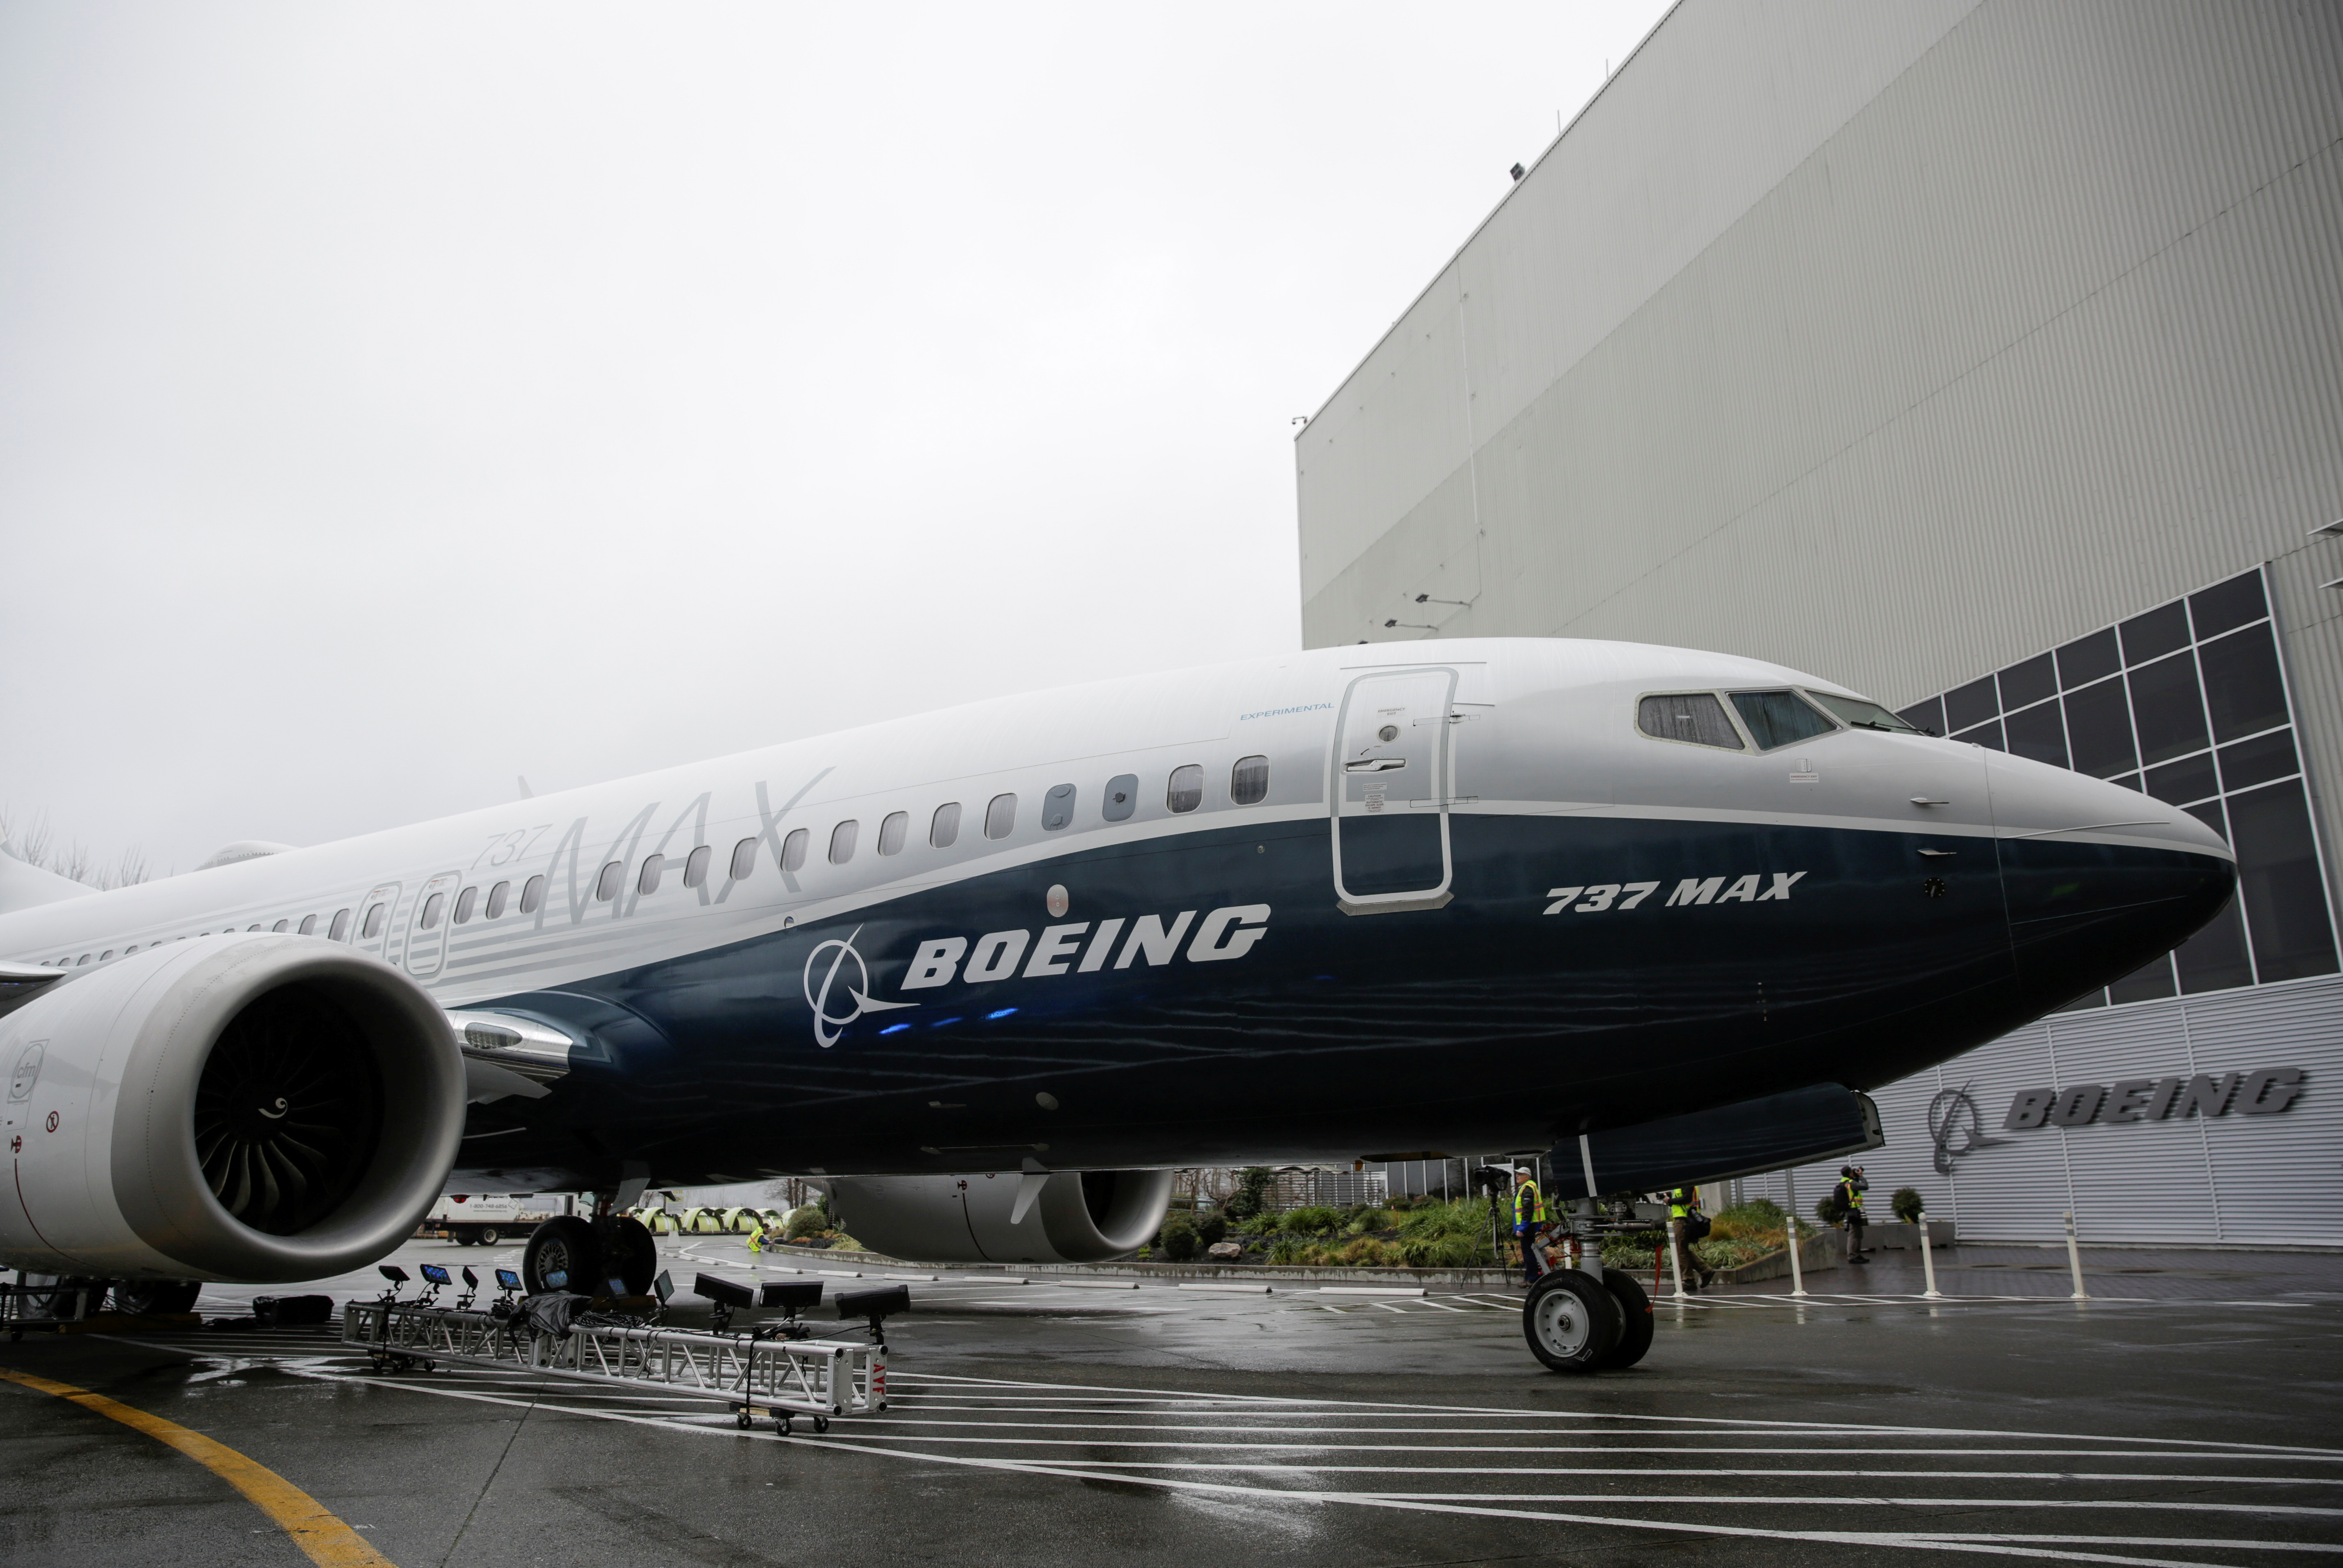 Boeing deliveries sink in first quarter after 737 MAX groundings